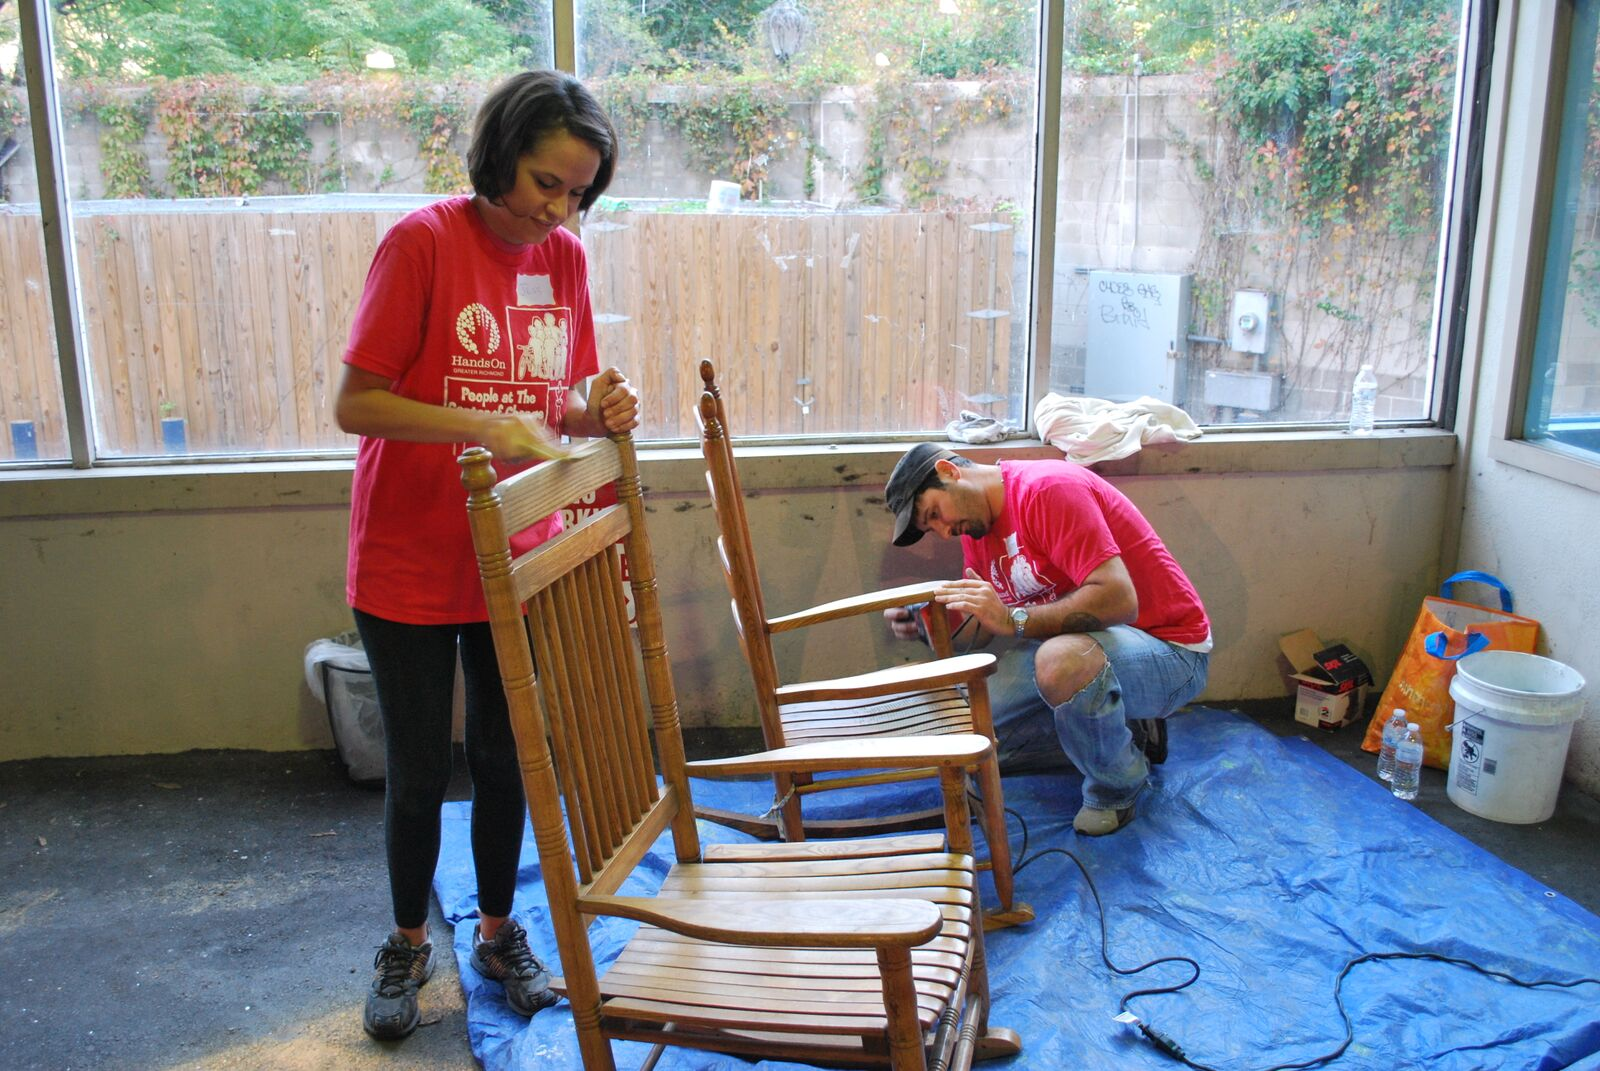 News from the community 60 nonprofits to benefit from volunteer handson day will also feature do it yourself diy projects and drop in projects so volunteers solutioingenieria